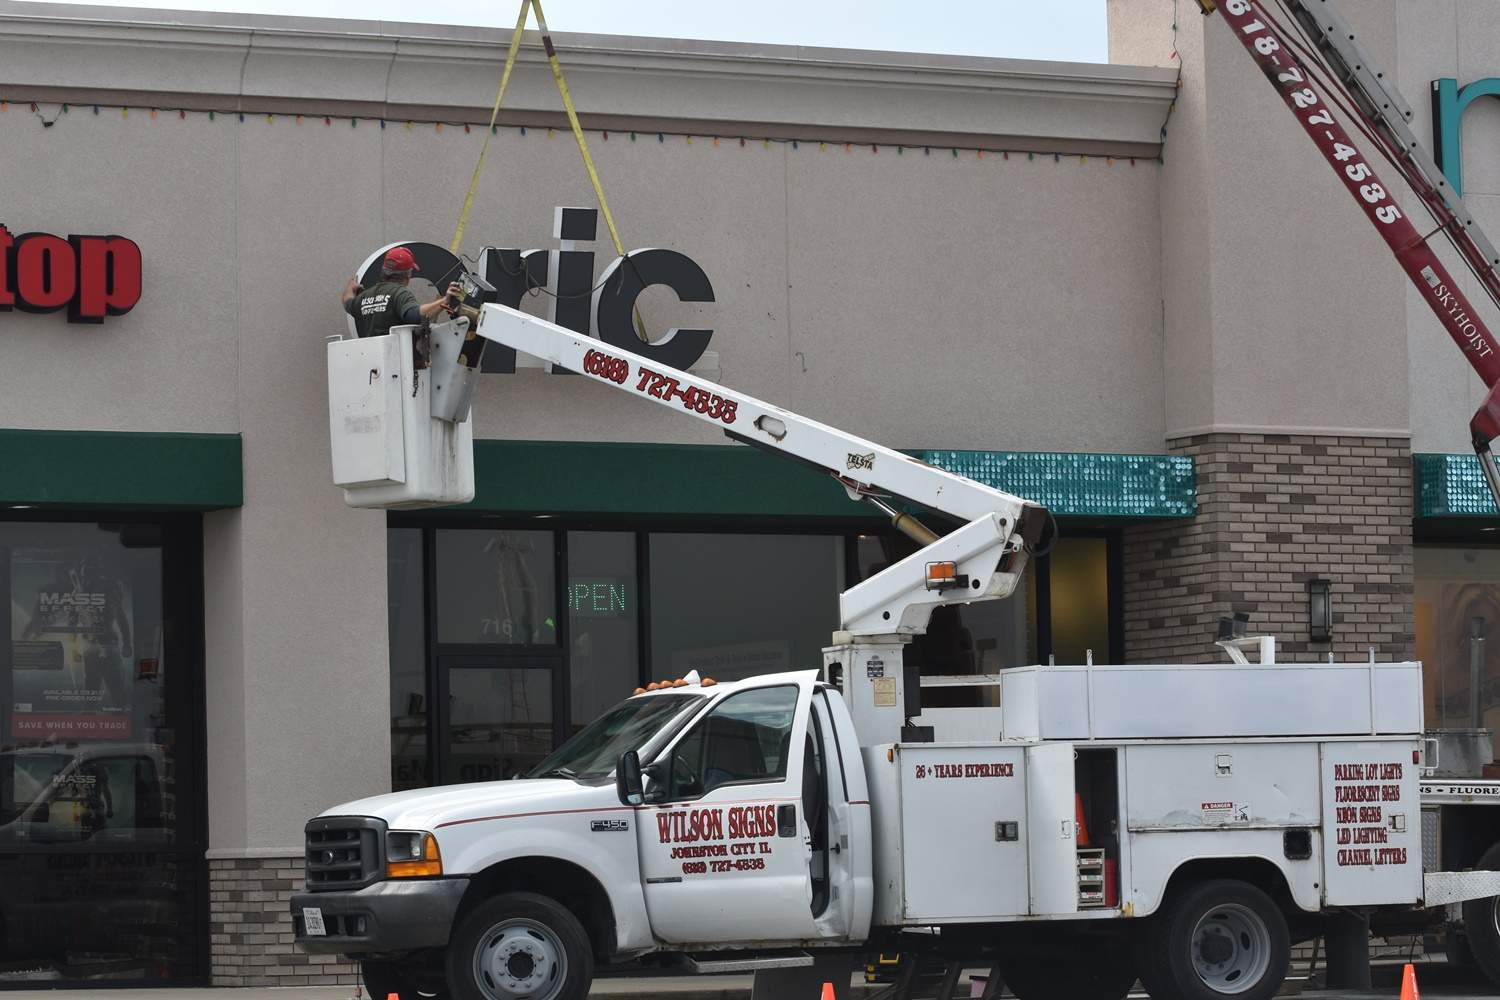 The new sign goes up.